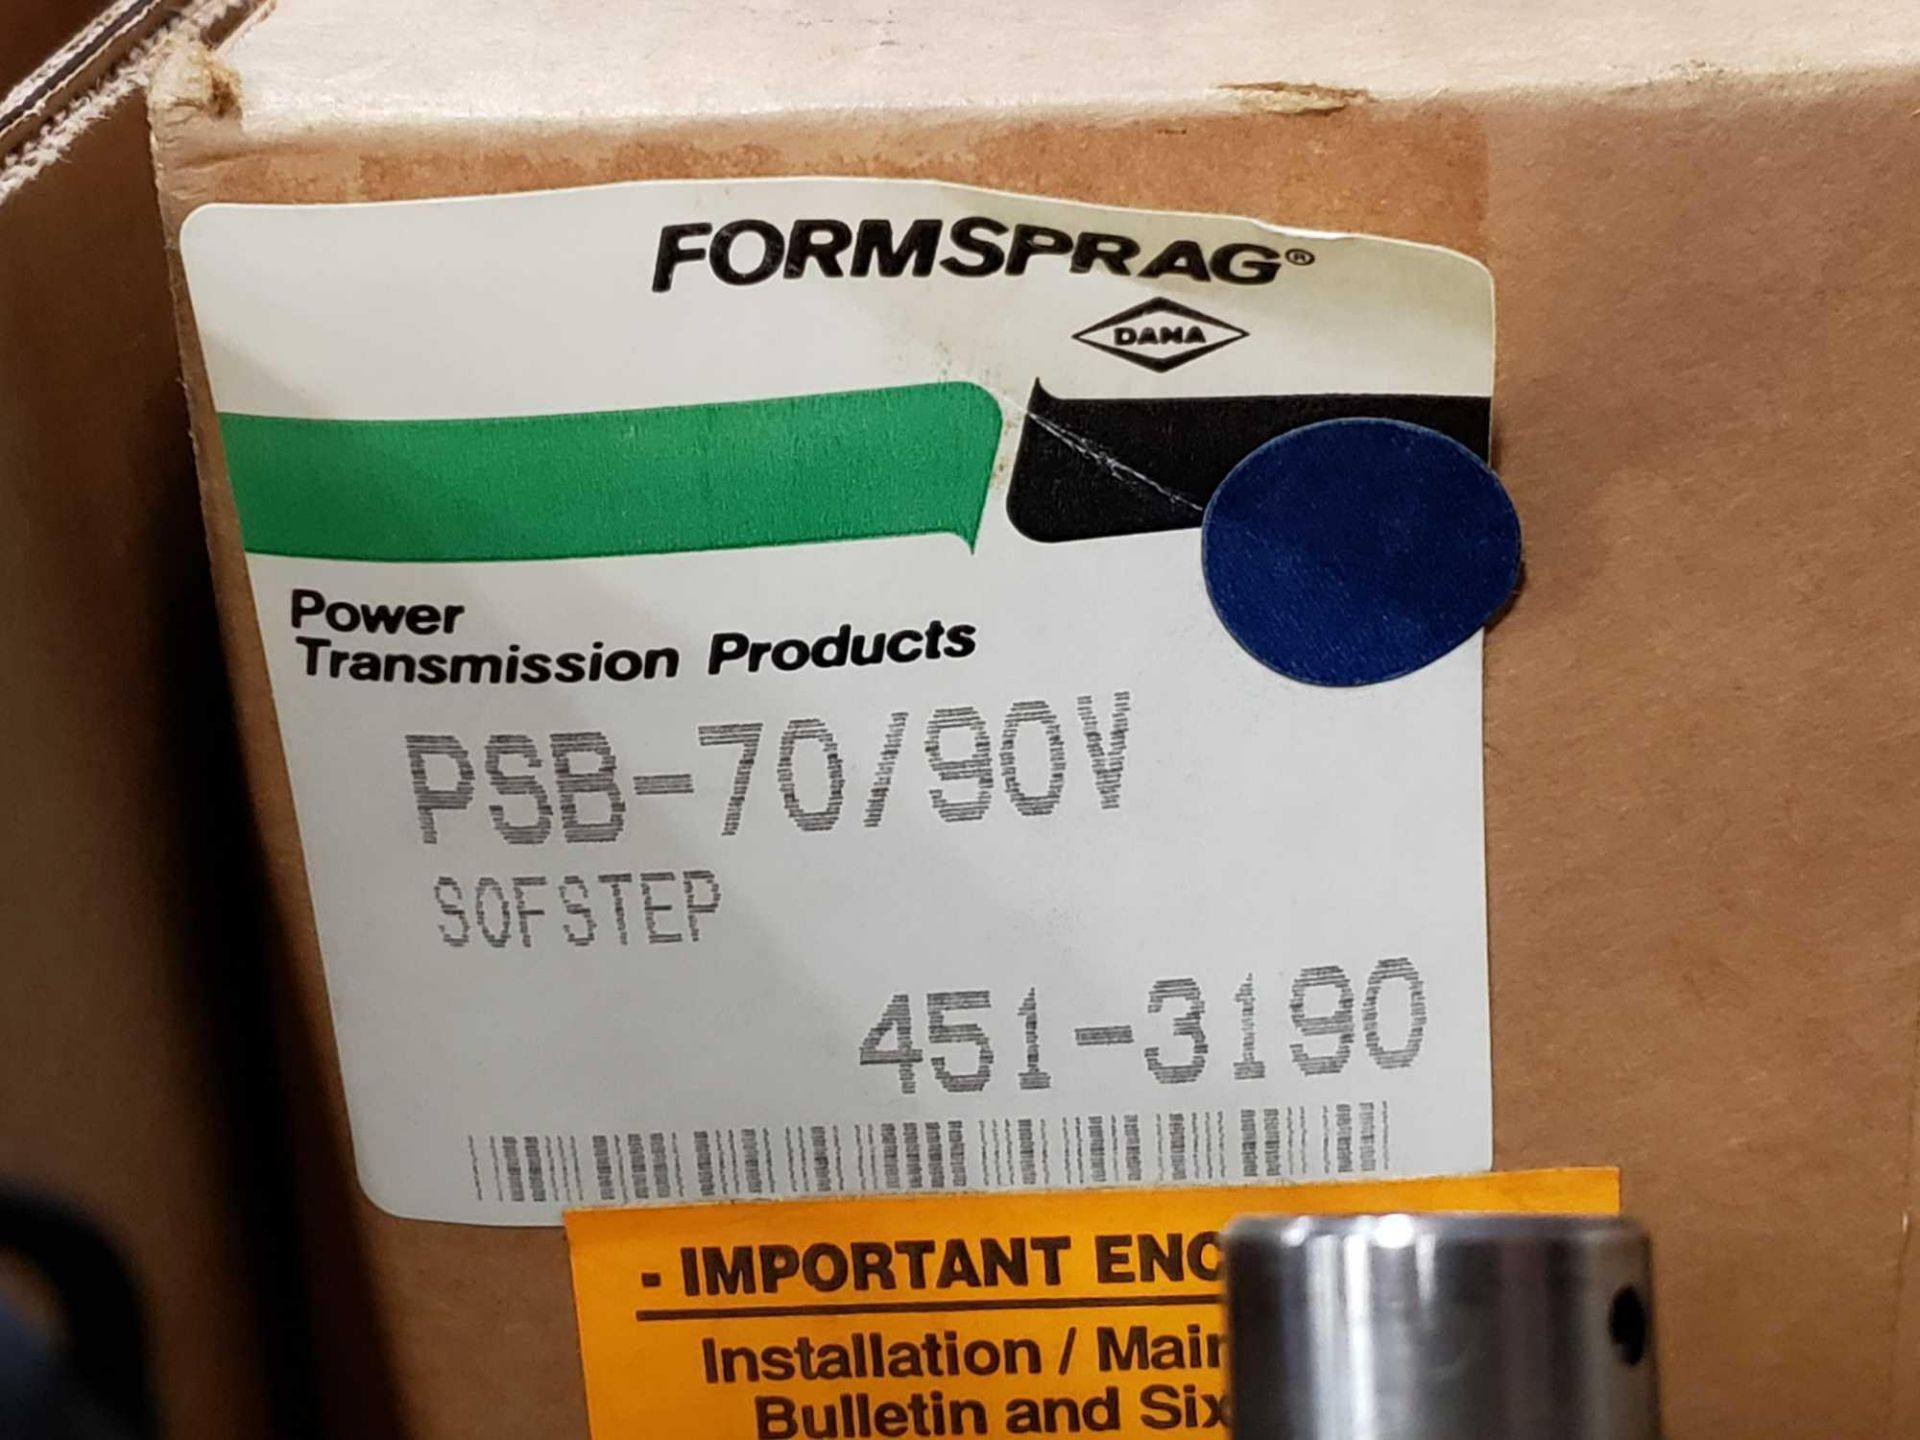 Lot 7 - Formsprag Magpowr sofstep model PSB-70/90V magnetic partical clutch brake. New in box.